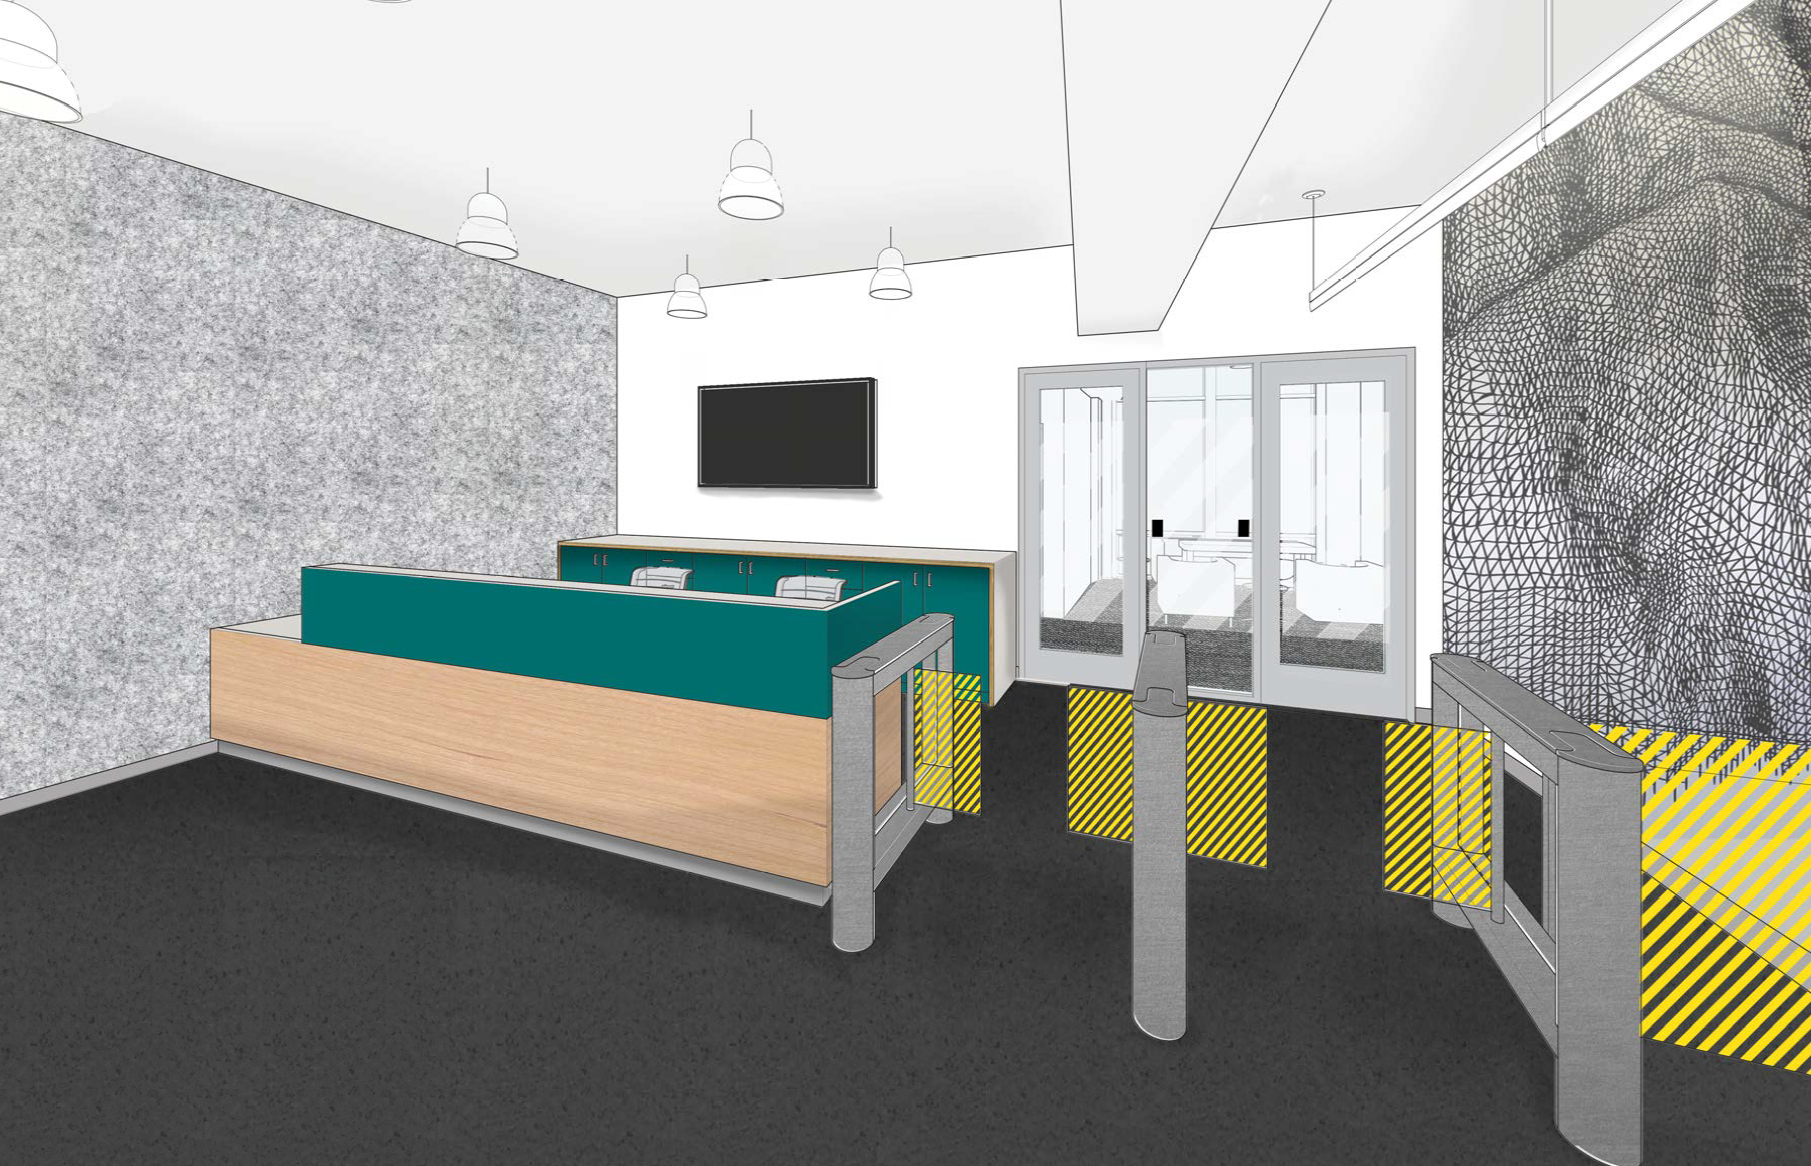 Rendering of Lobby and Reception